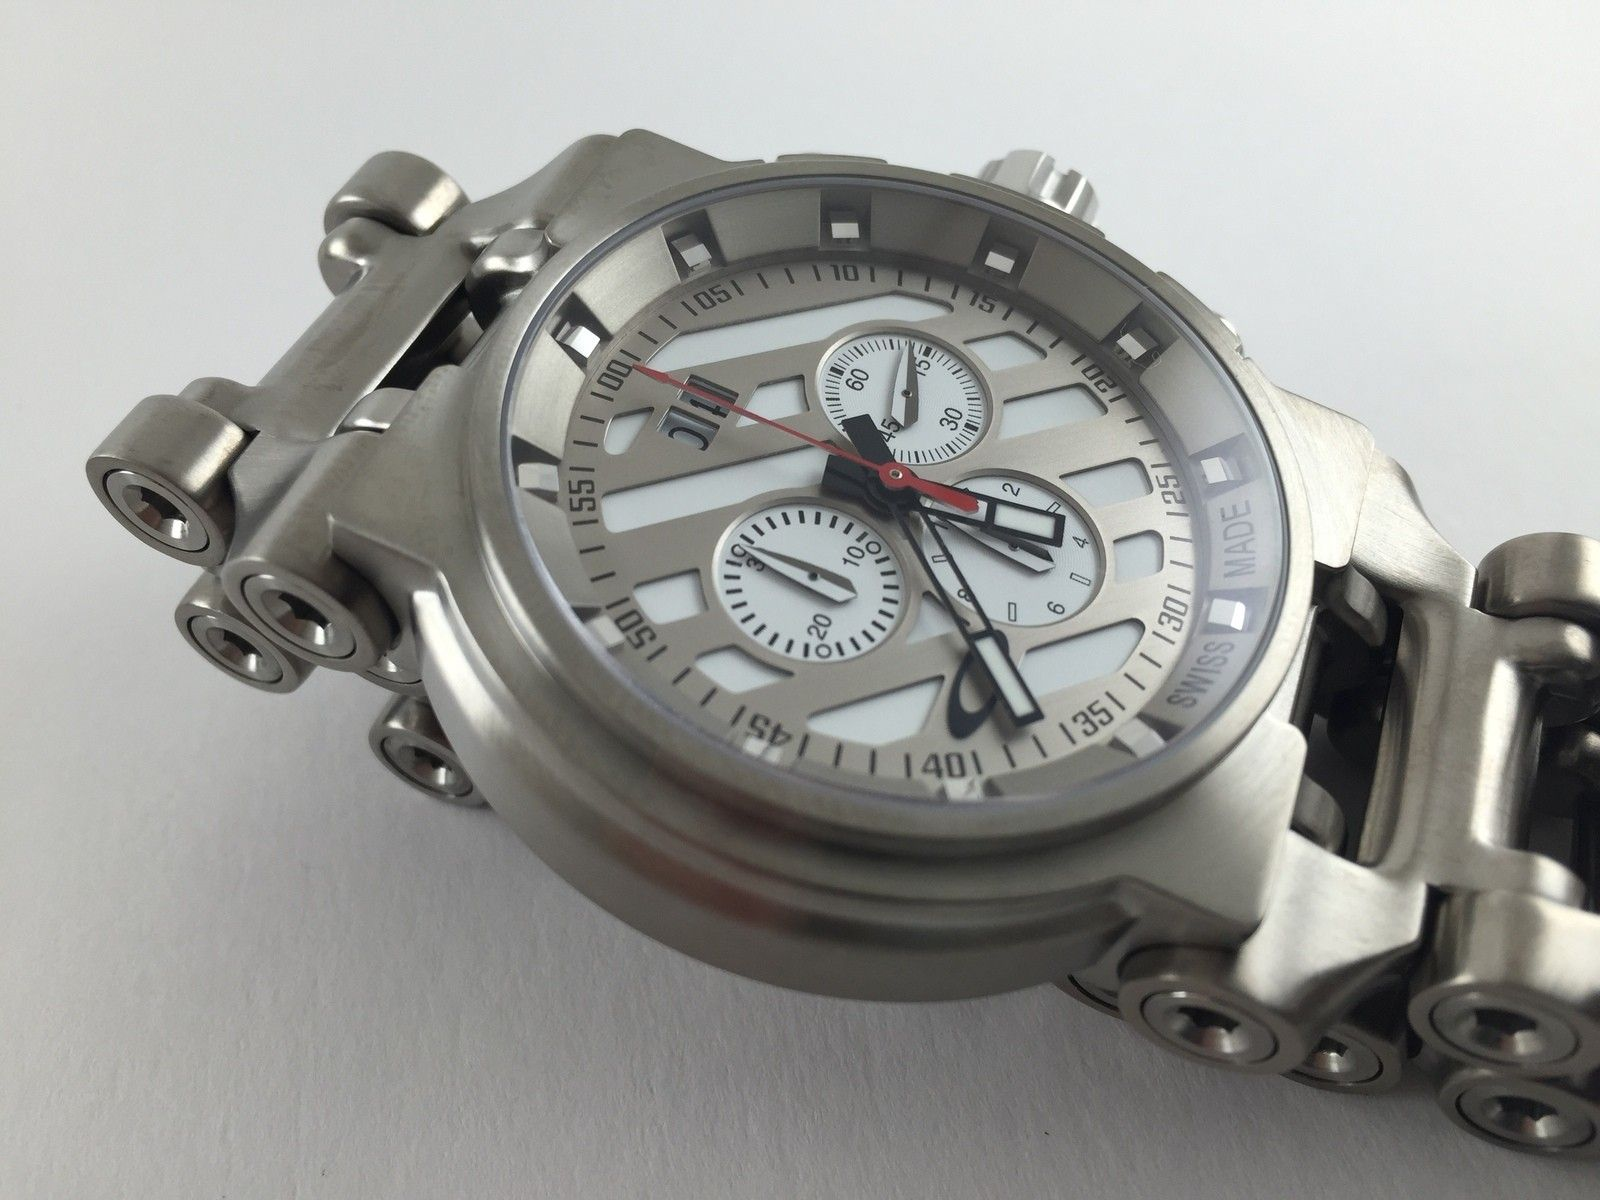 Hollow Point & GMT Watch - 15714415722_88f2198ee6_o.jpg